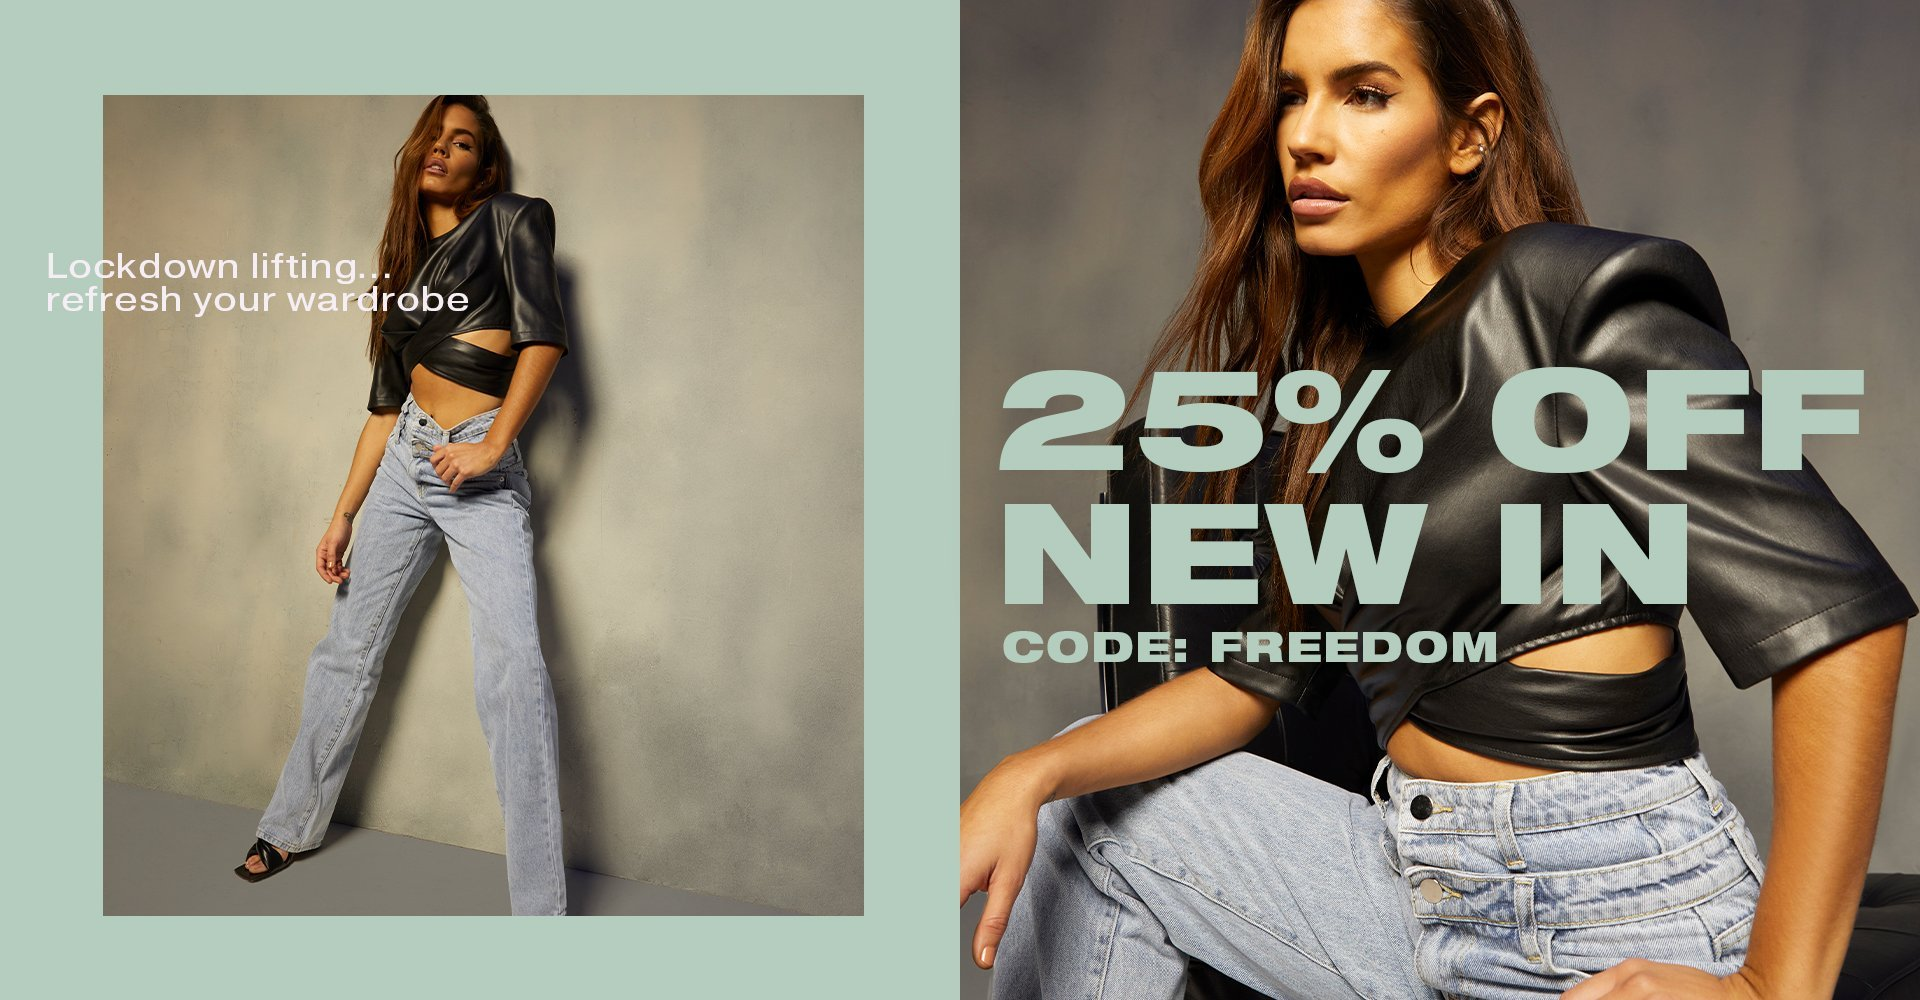 Misspap: 25% off women's fashion, dresses and clothing - new line